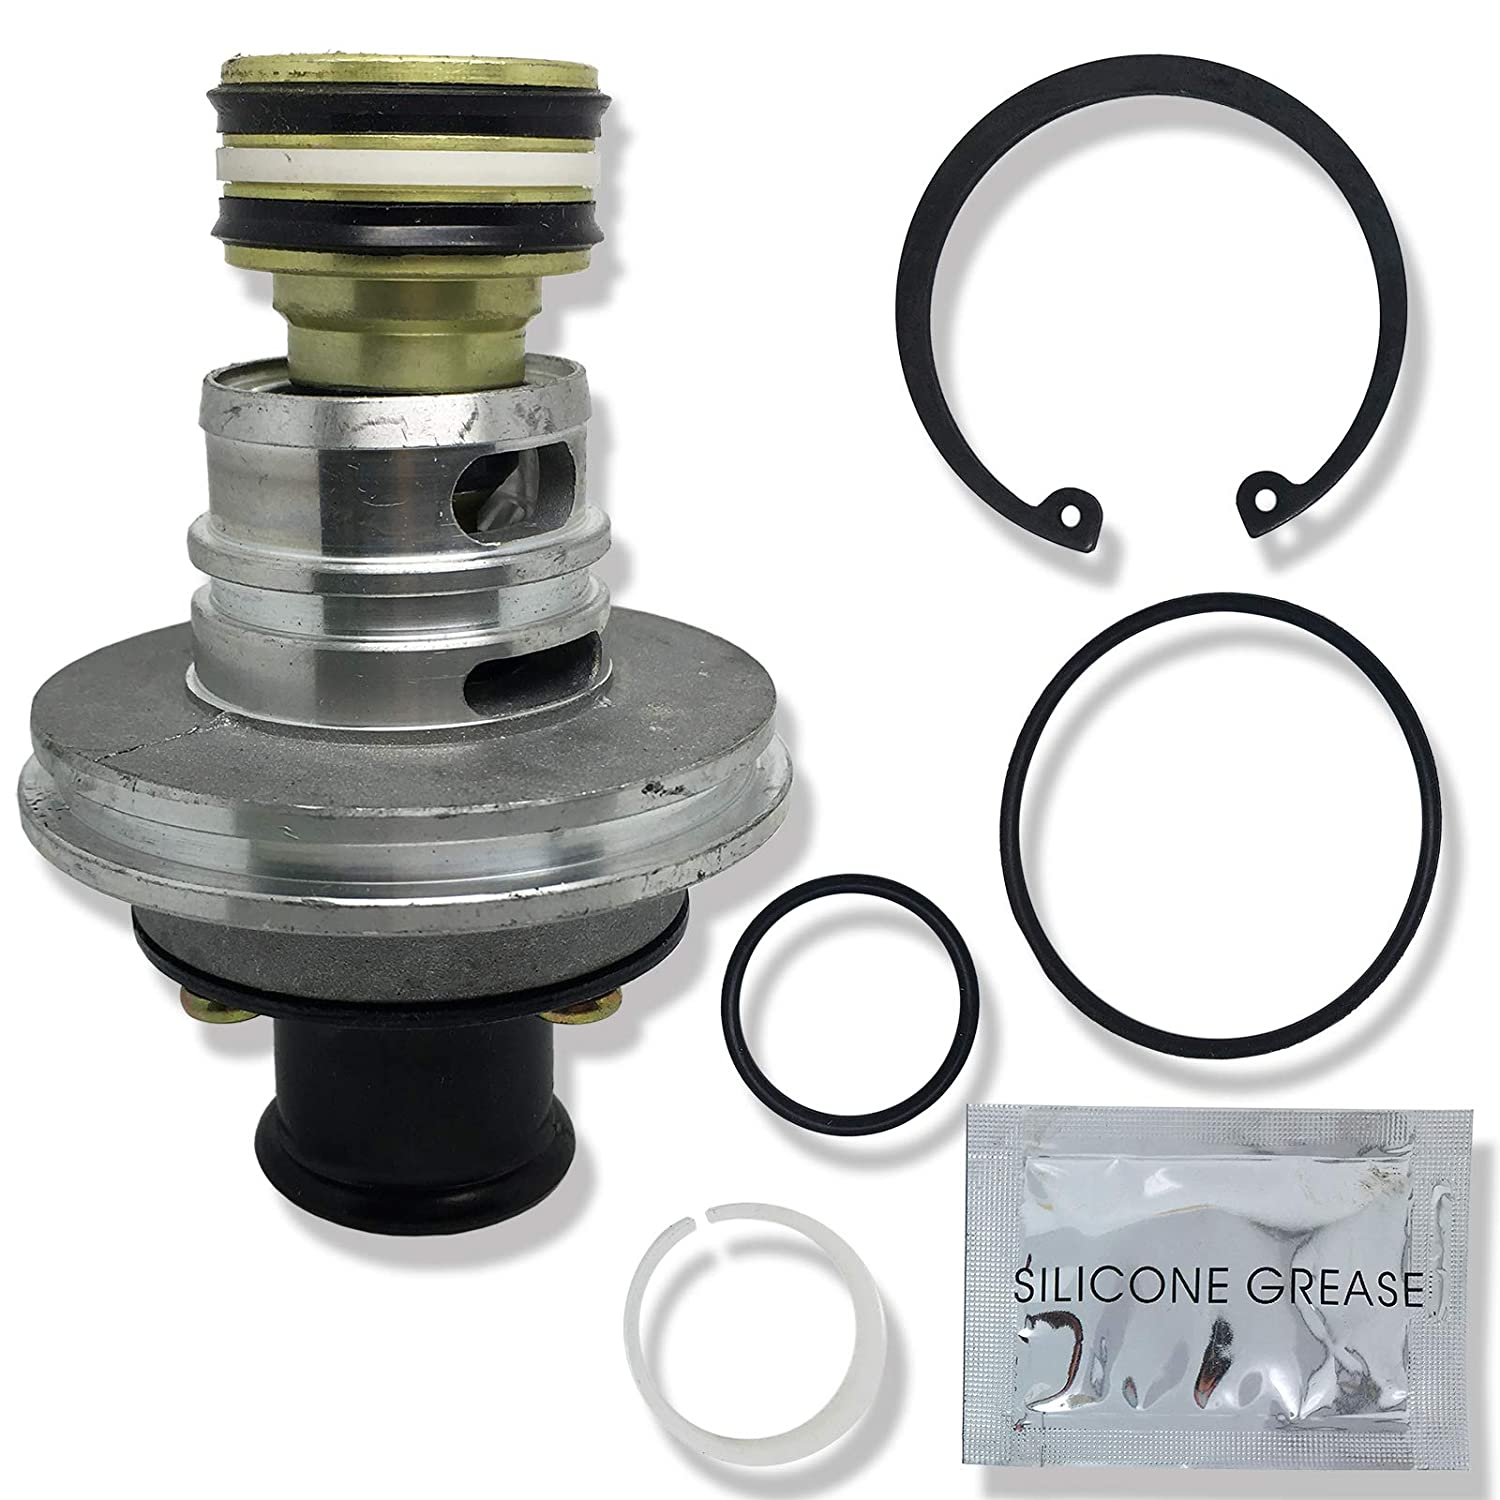 CBK Purge High Boost Purge Valve Kit for AD-IP 801266/065612 (Bendix K022105 Style)